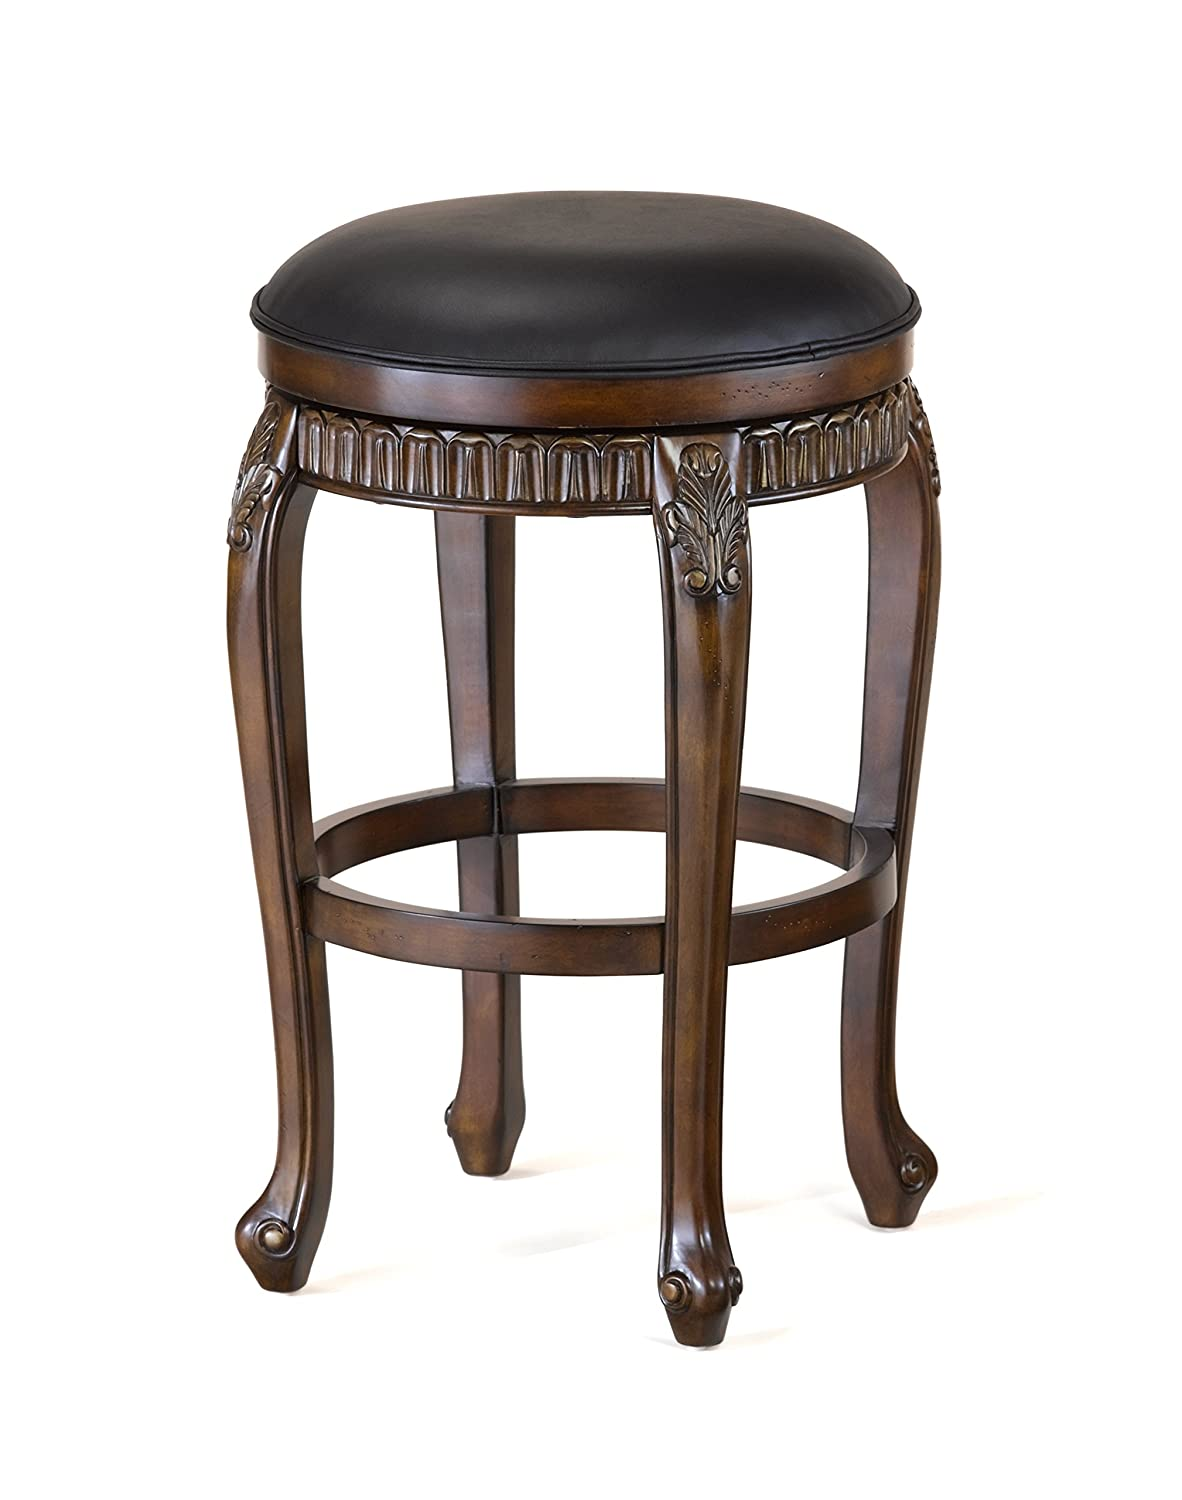 Wondrous Hillsdale Fleur De Lis Backless Swivel Bar Stool 30 Distressed Cherry With Copper Highlights Ibusinesslaw Wood Chair Design Ideas Ibusinesslaworg